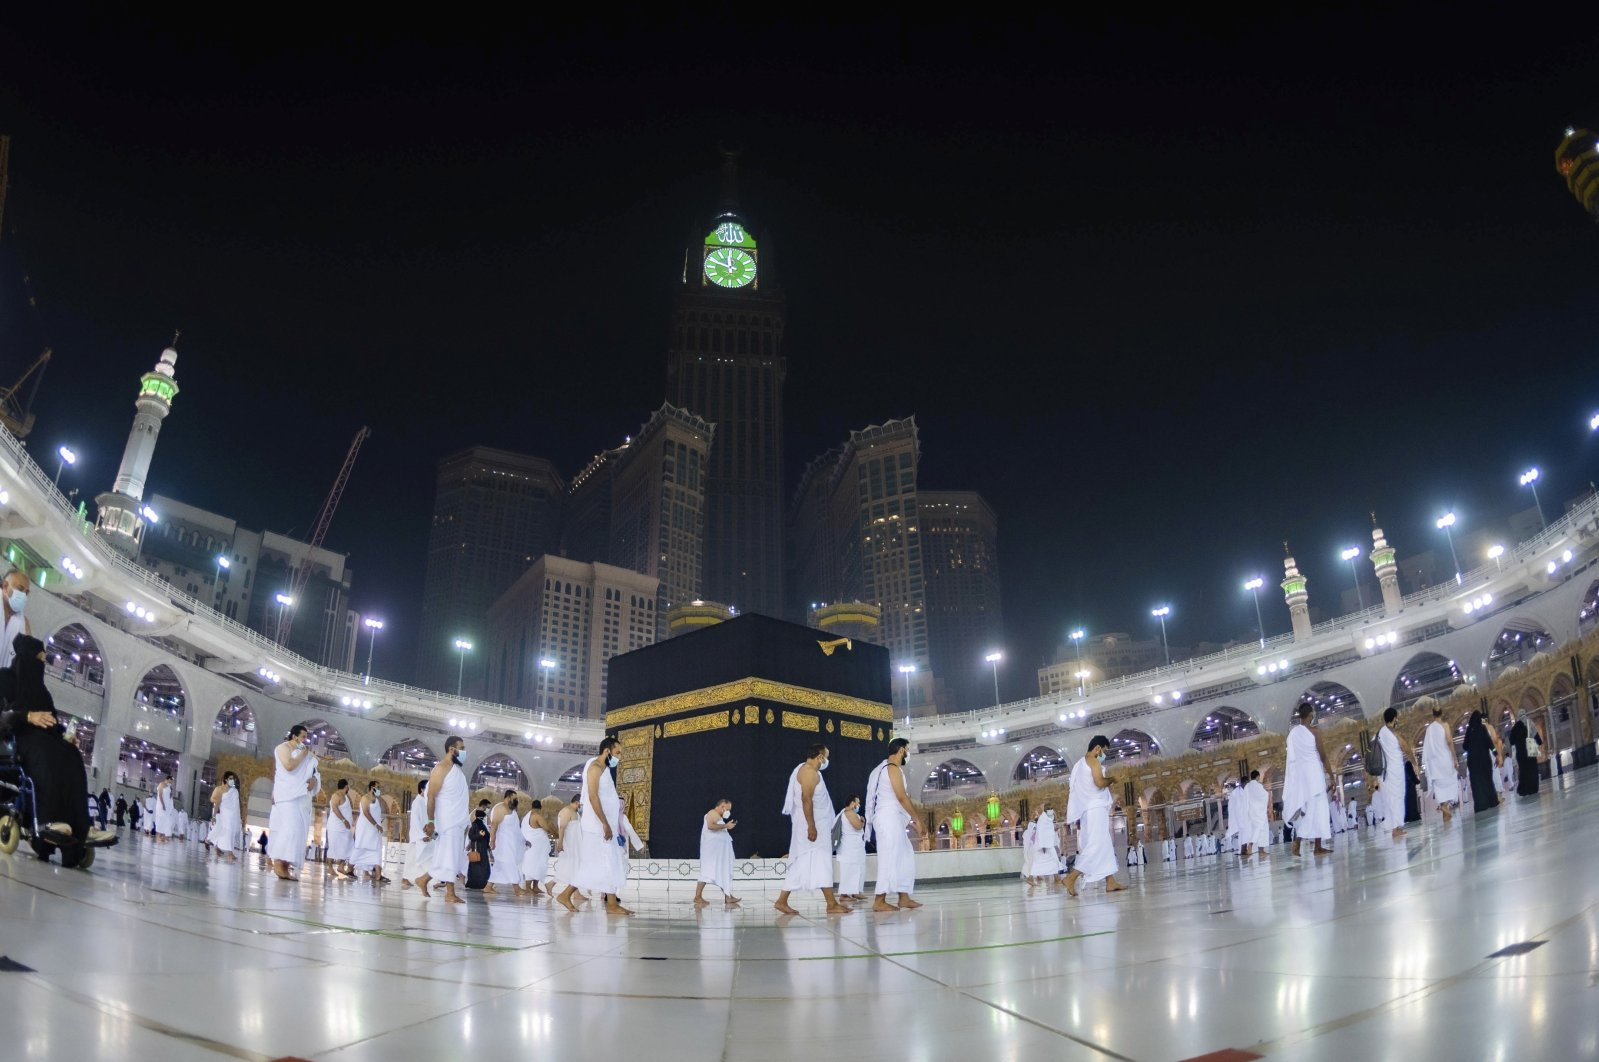 Muslims practice social distancing while praying around the Kaaba in the Muslim holy city of Mecca, Saudi Arabia, Sunday, Oct. 4, 2020. (Saudi Ministry of Hajj and Umrah via AP)